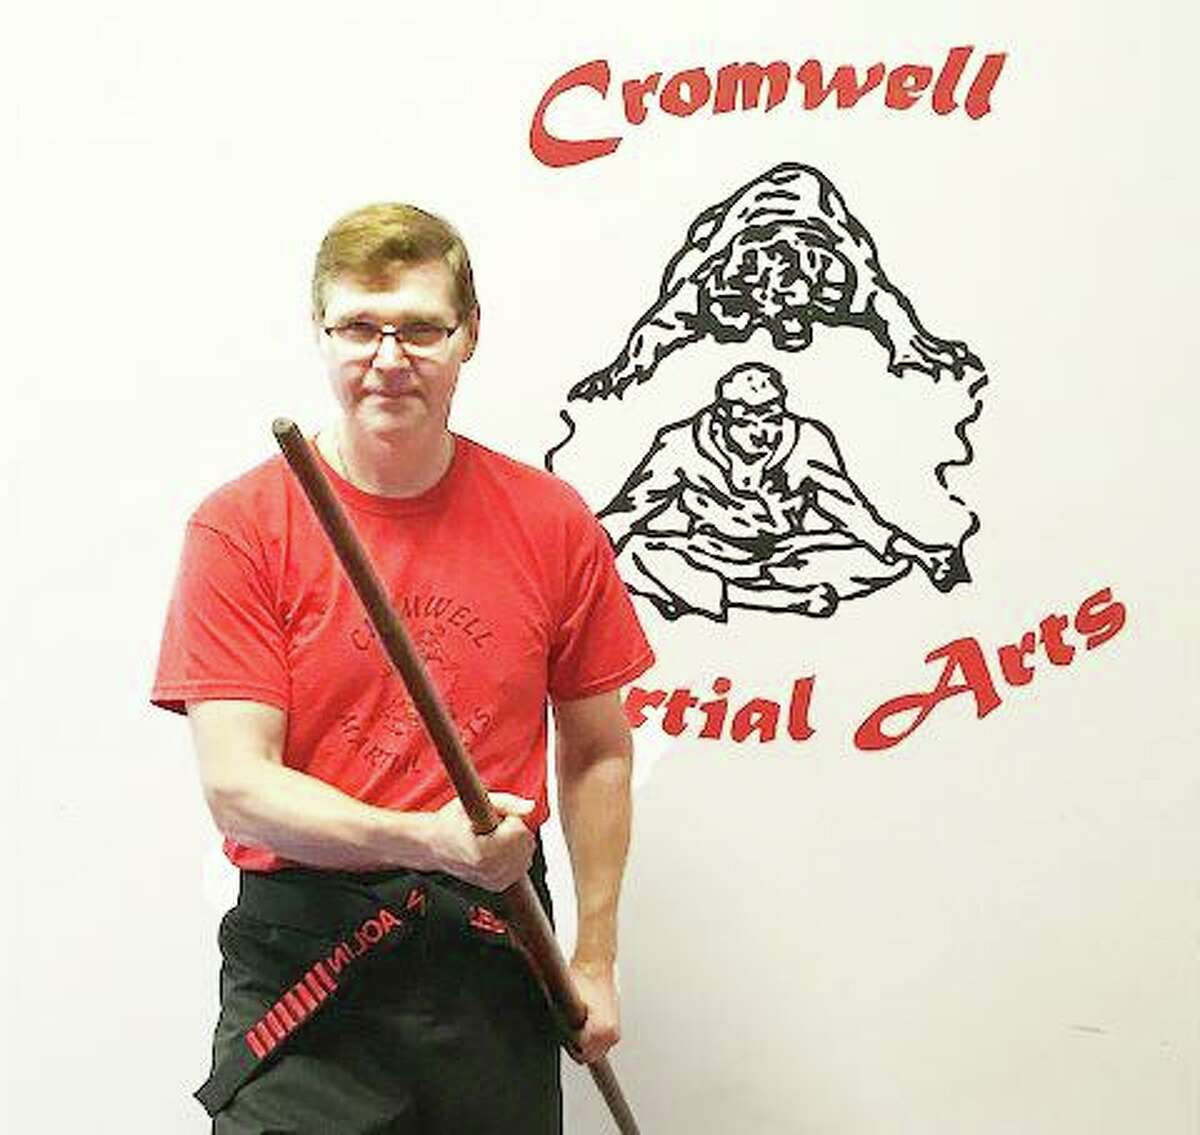 Sensei Frank Shekosky, owner of Cromwell Martial Arts, has been featured in the book